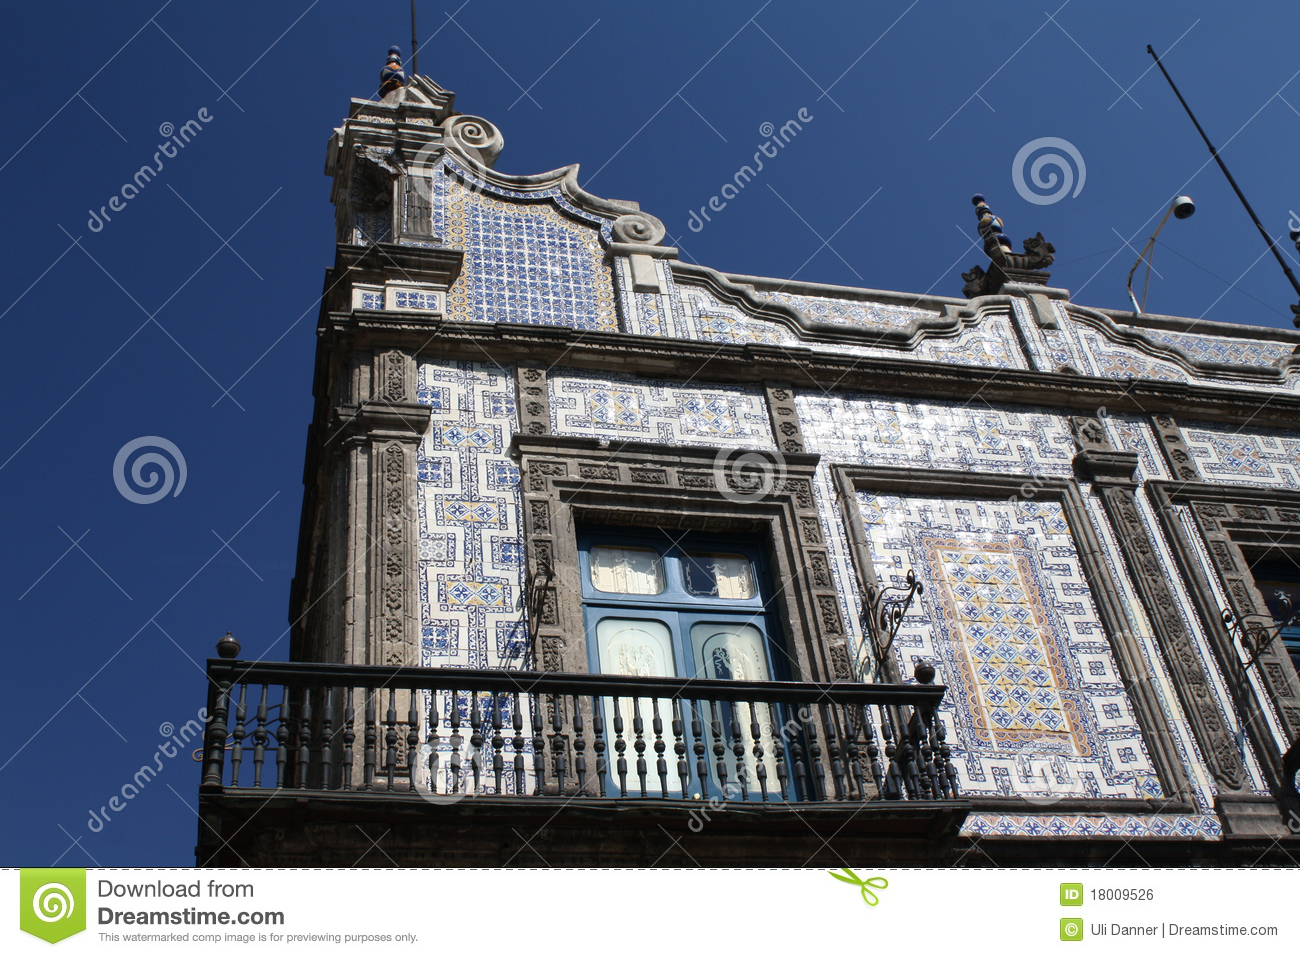 Casa de los azulejos mexico city stock photo image for Casa de azulejos mexico